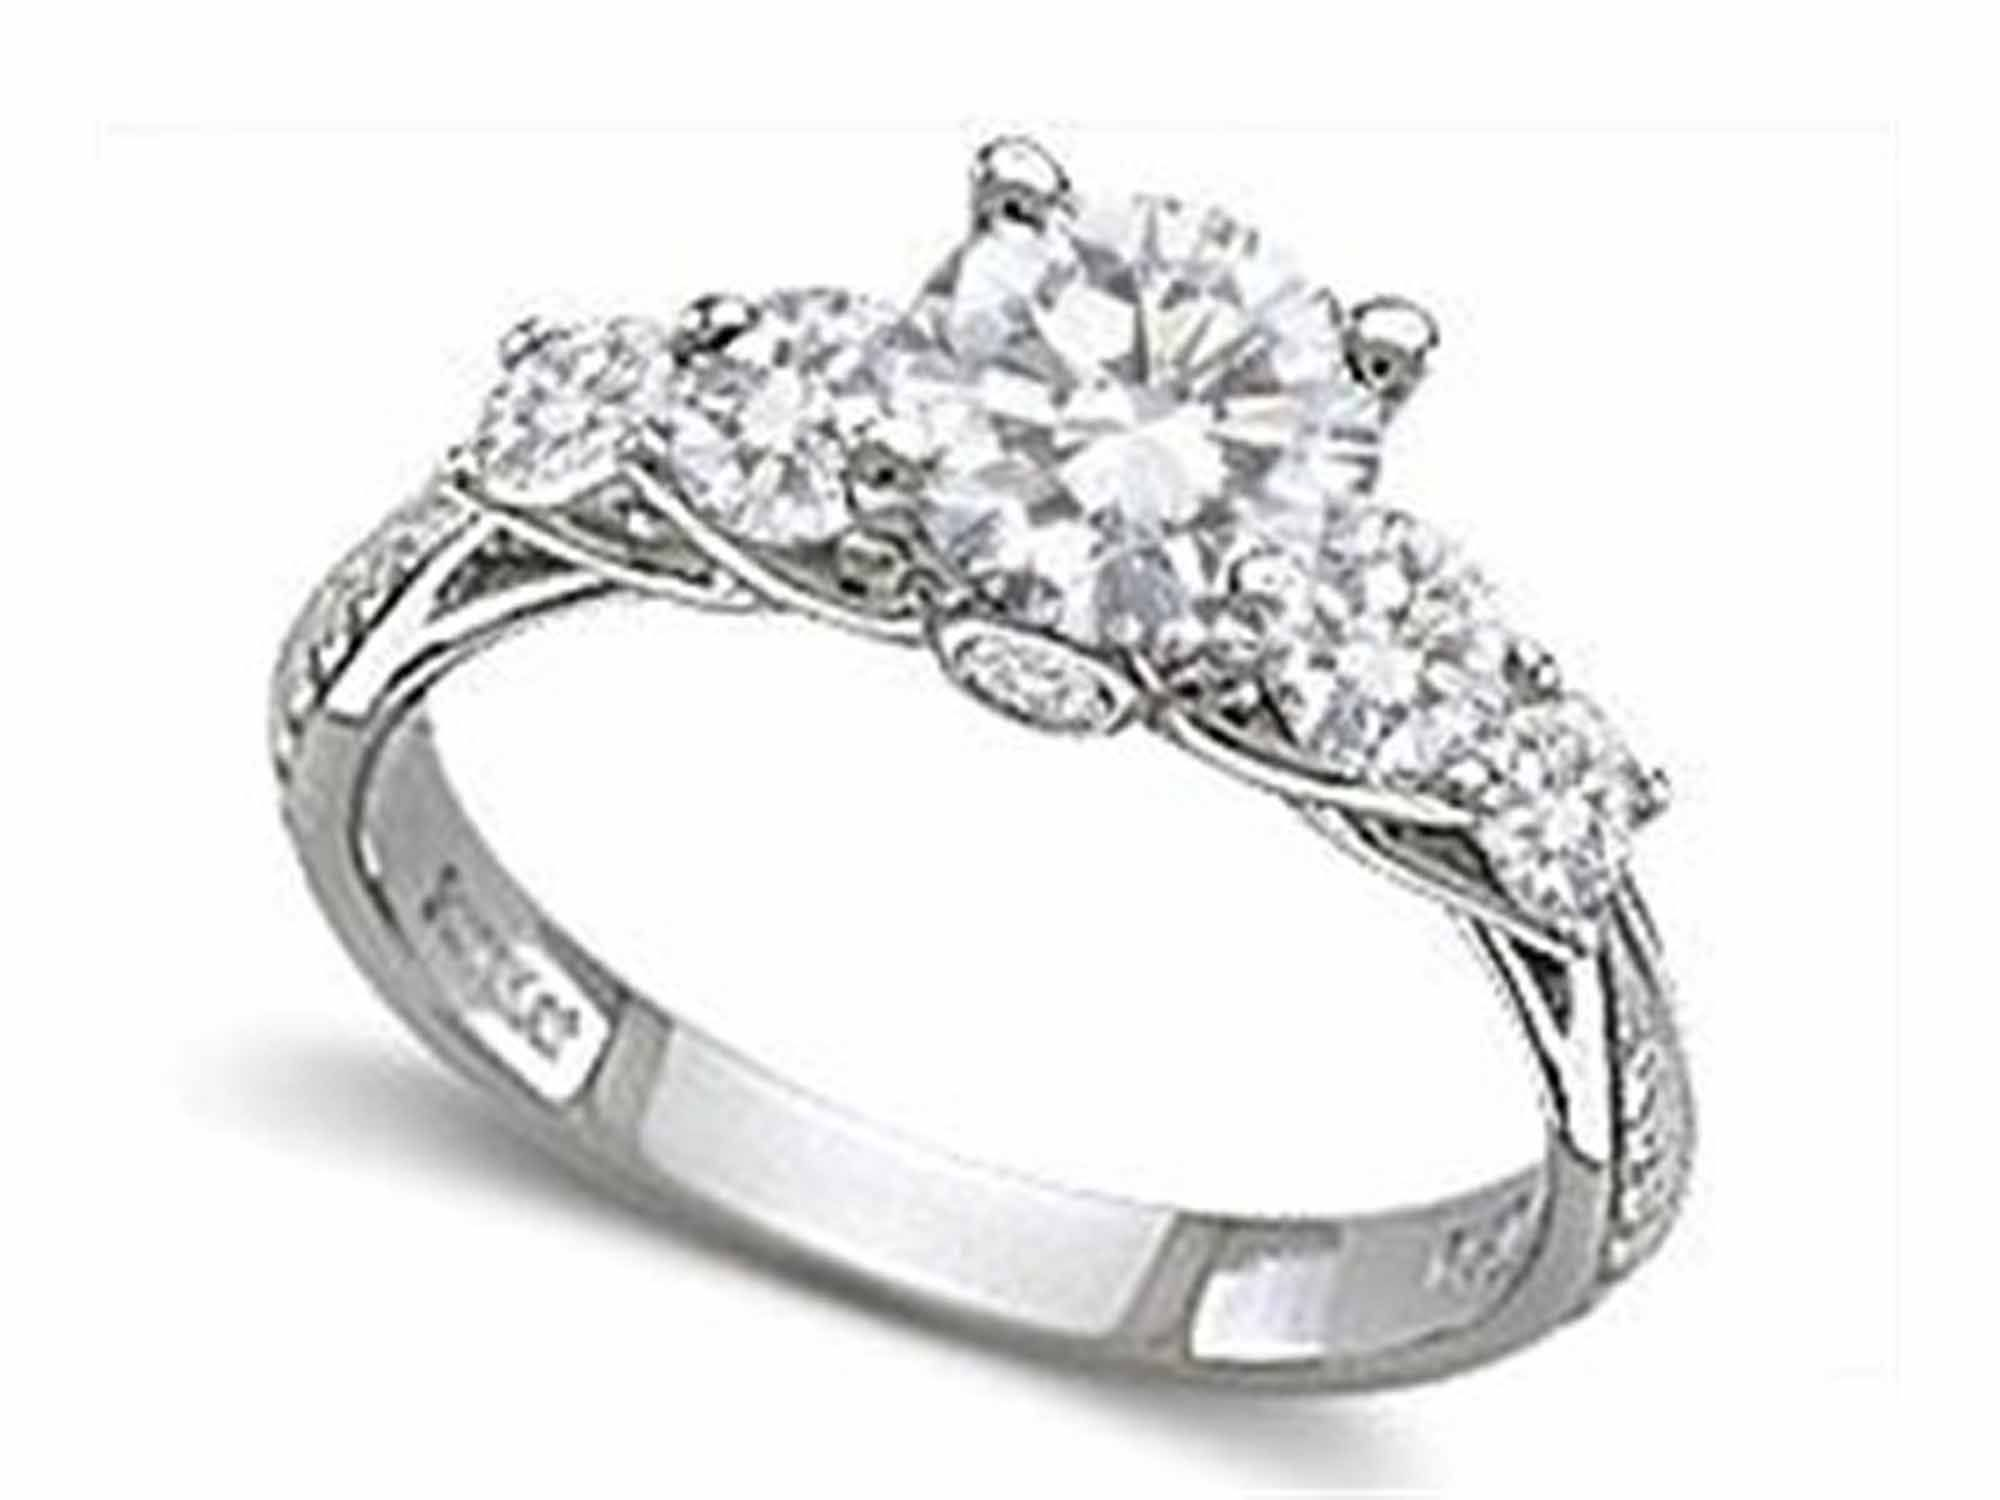 wedding ring pictures wedding rings pictures 25 Best Ideas about Wedding Ring Pictures on Pinterest Wedding ring photography Ring pictures and Wedding pictures